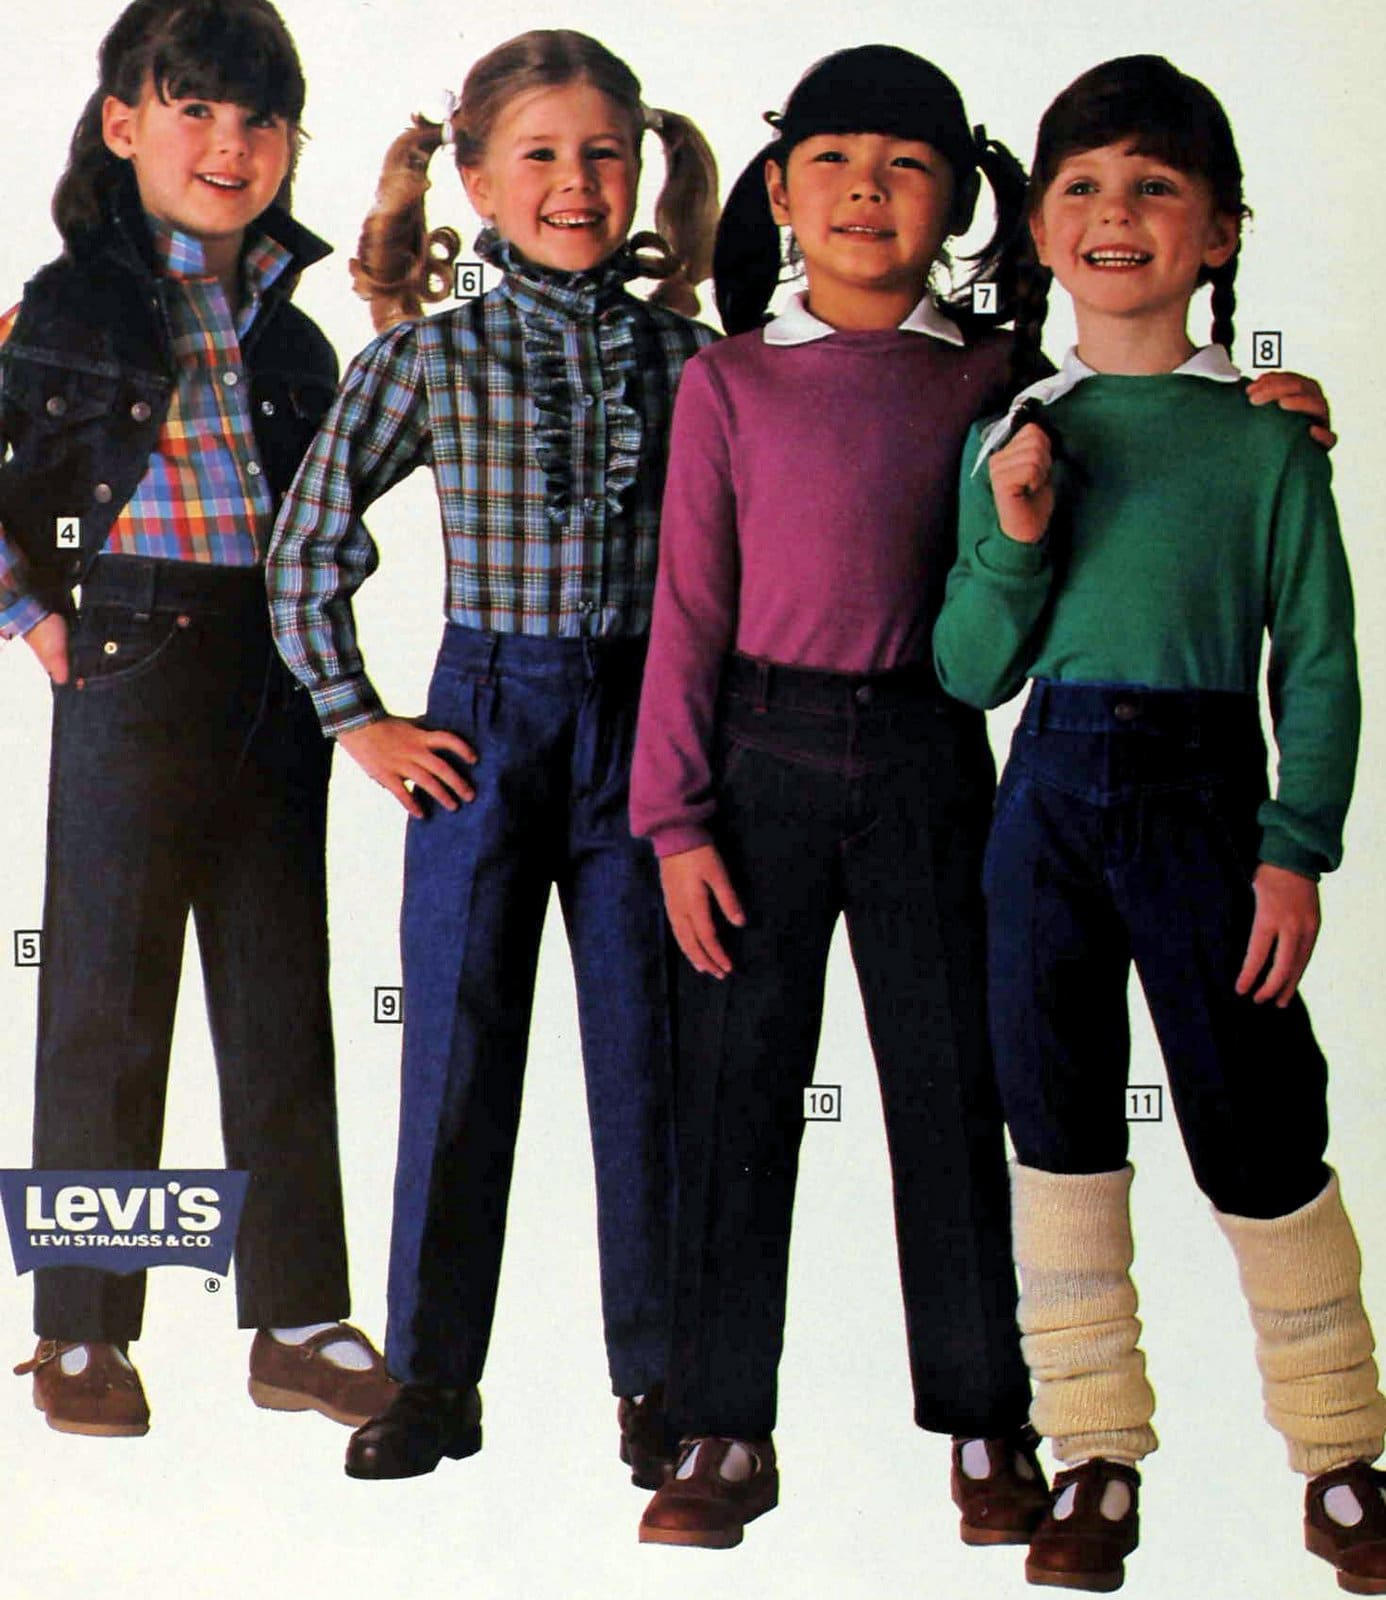 Little girls in outfits from fall 1983